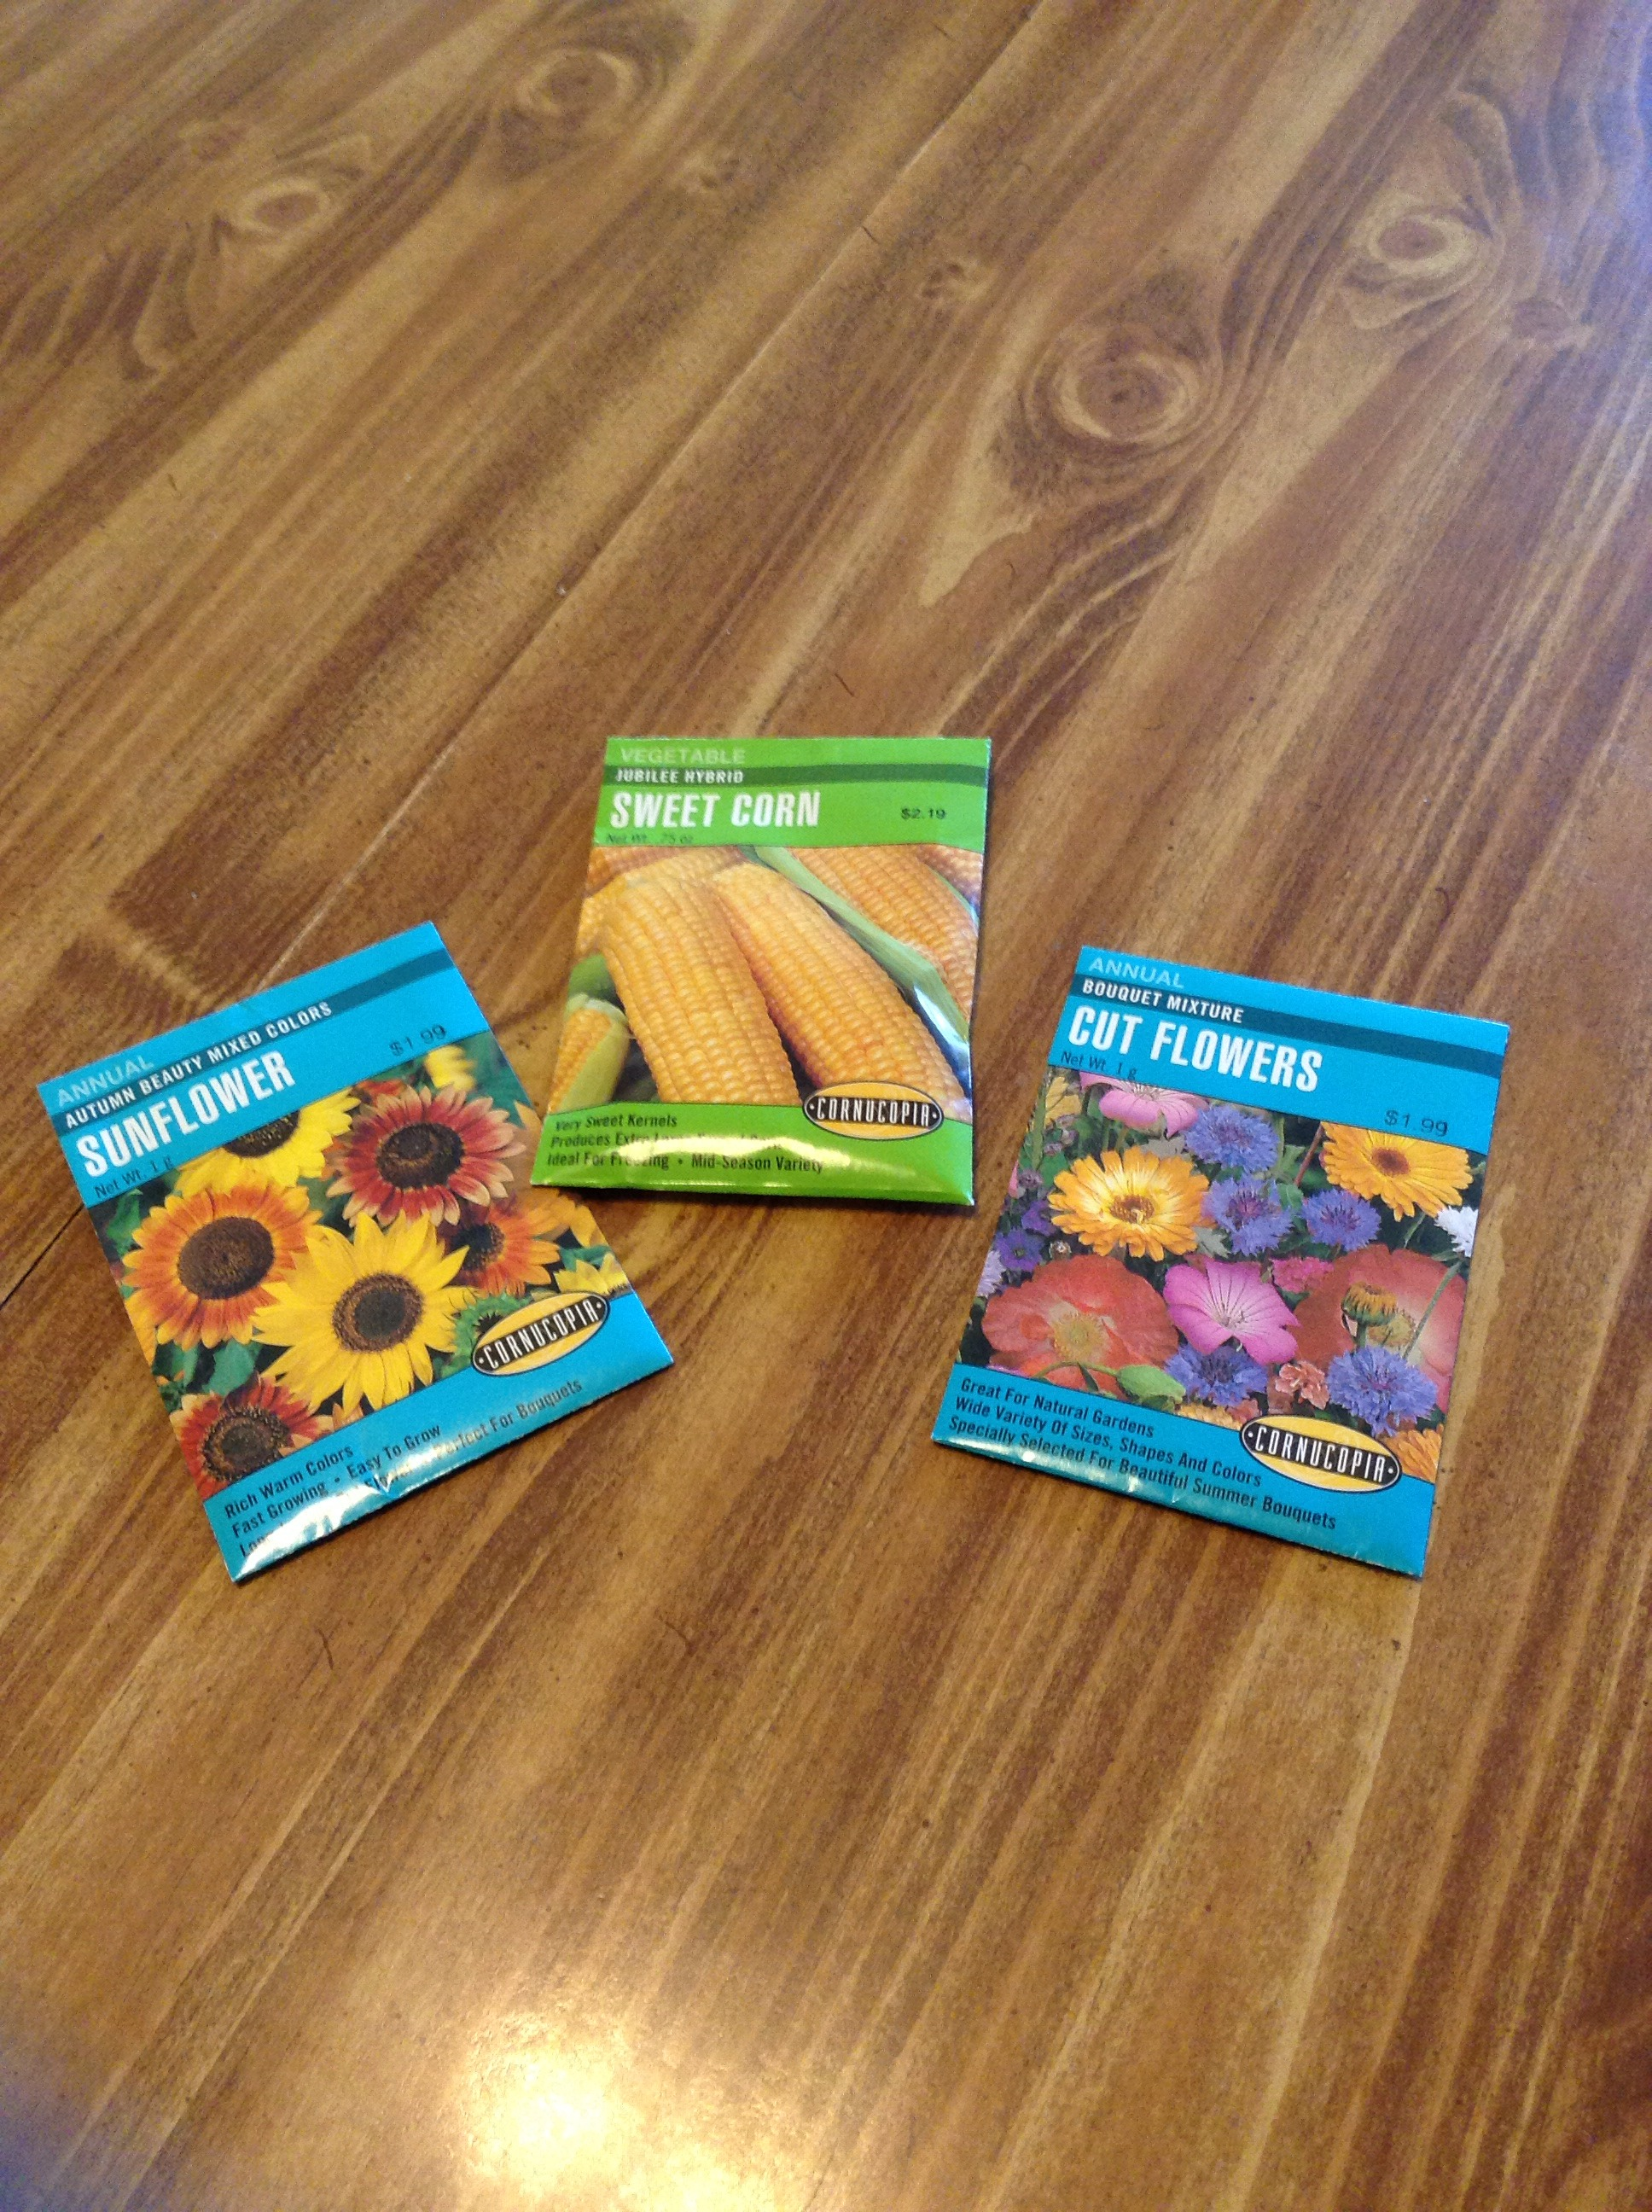 Picture of Seeds, Dirt, and Mulch